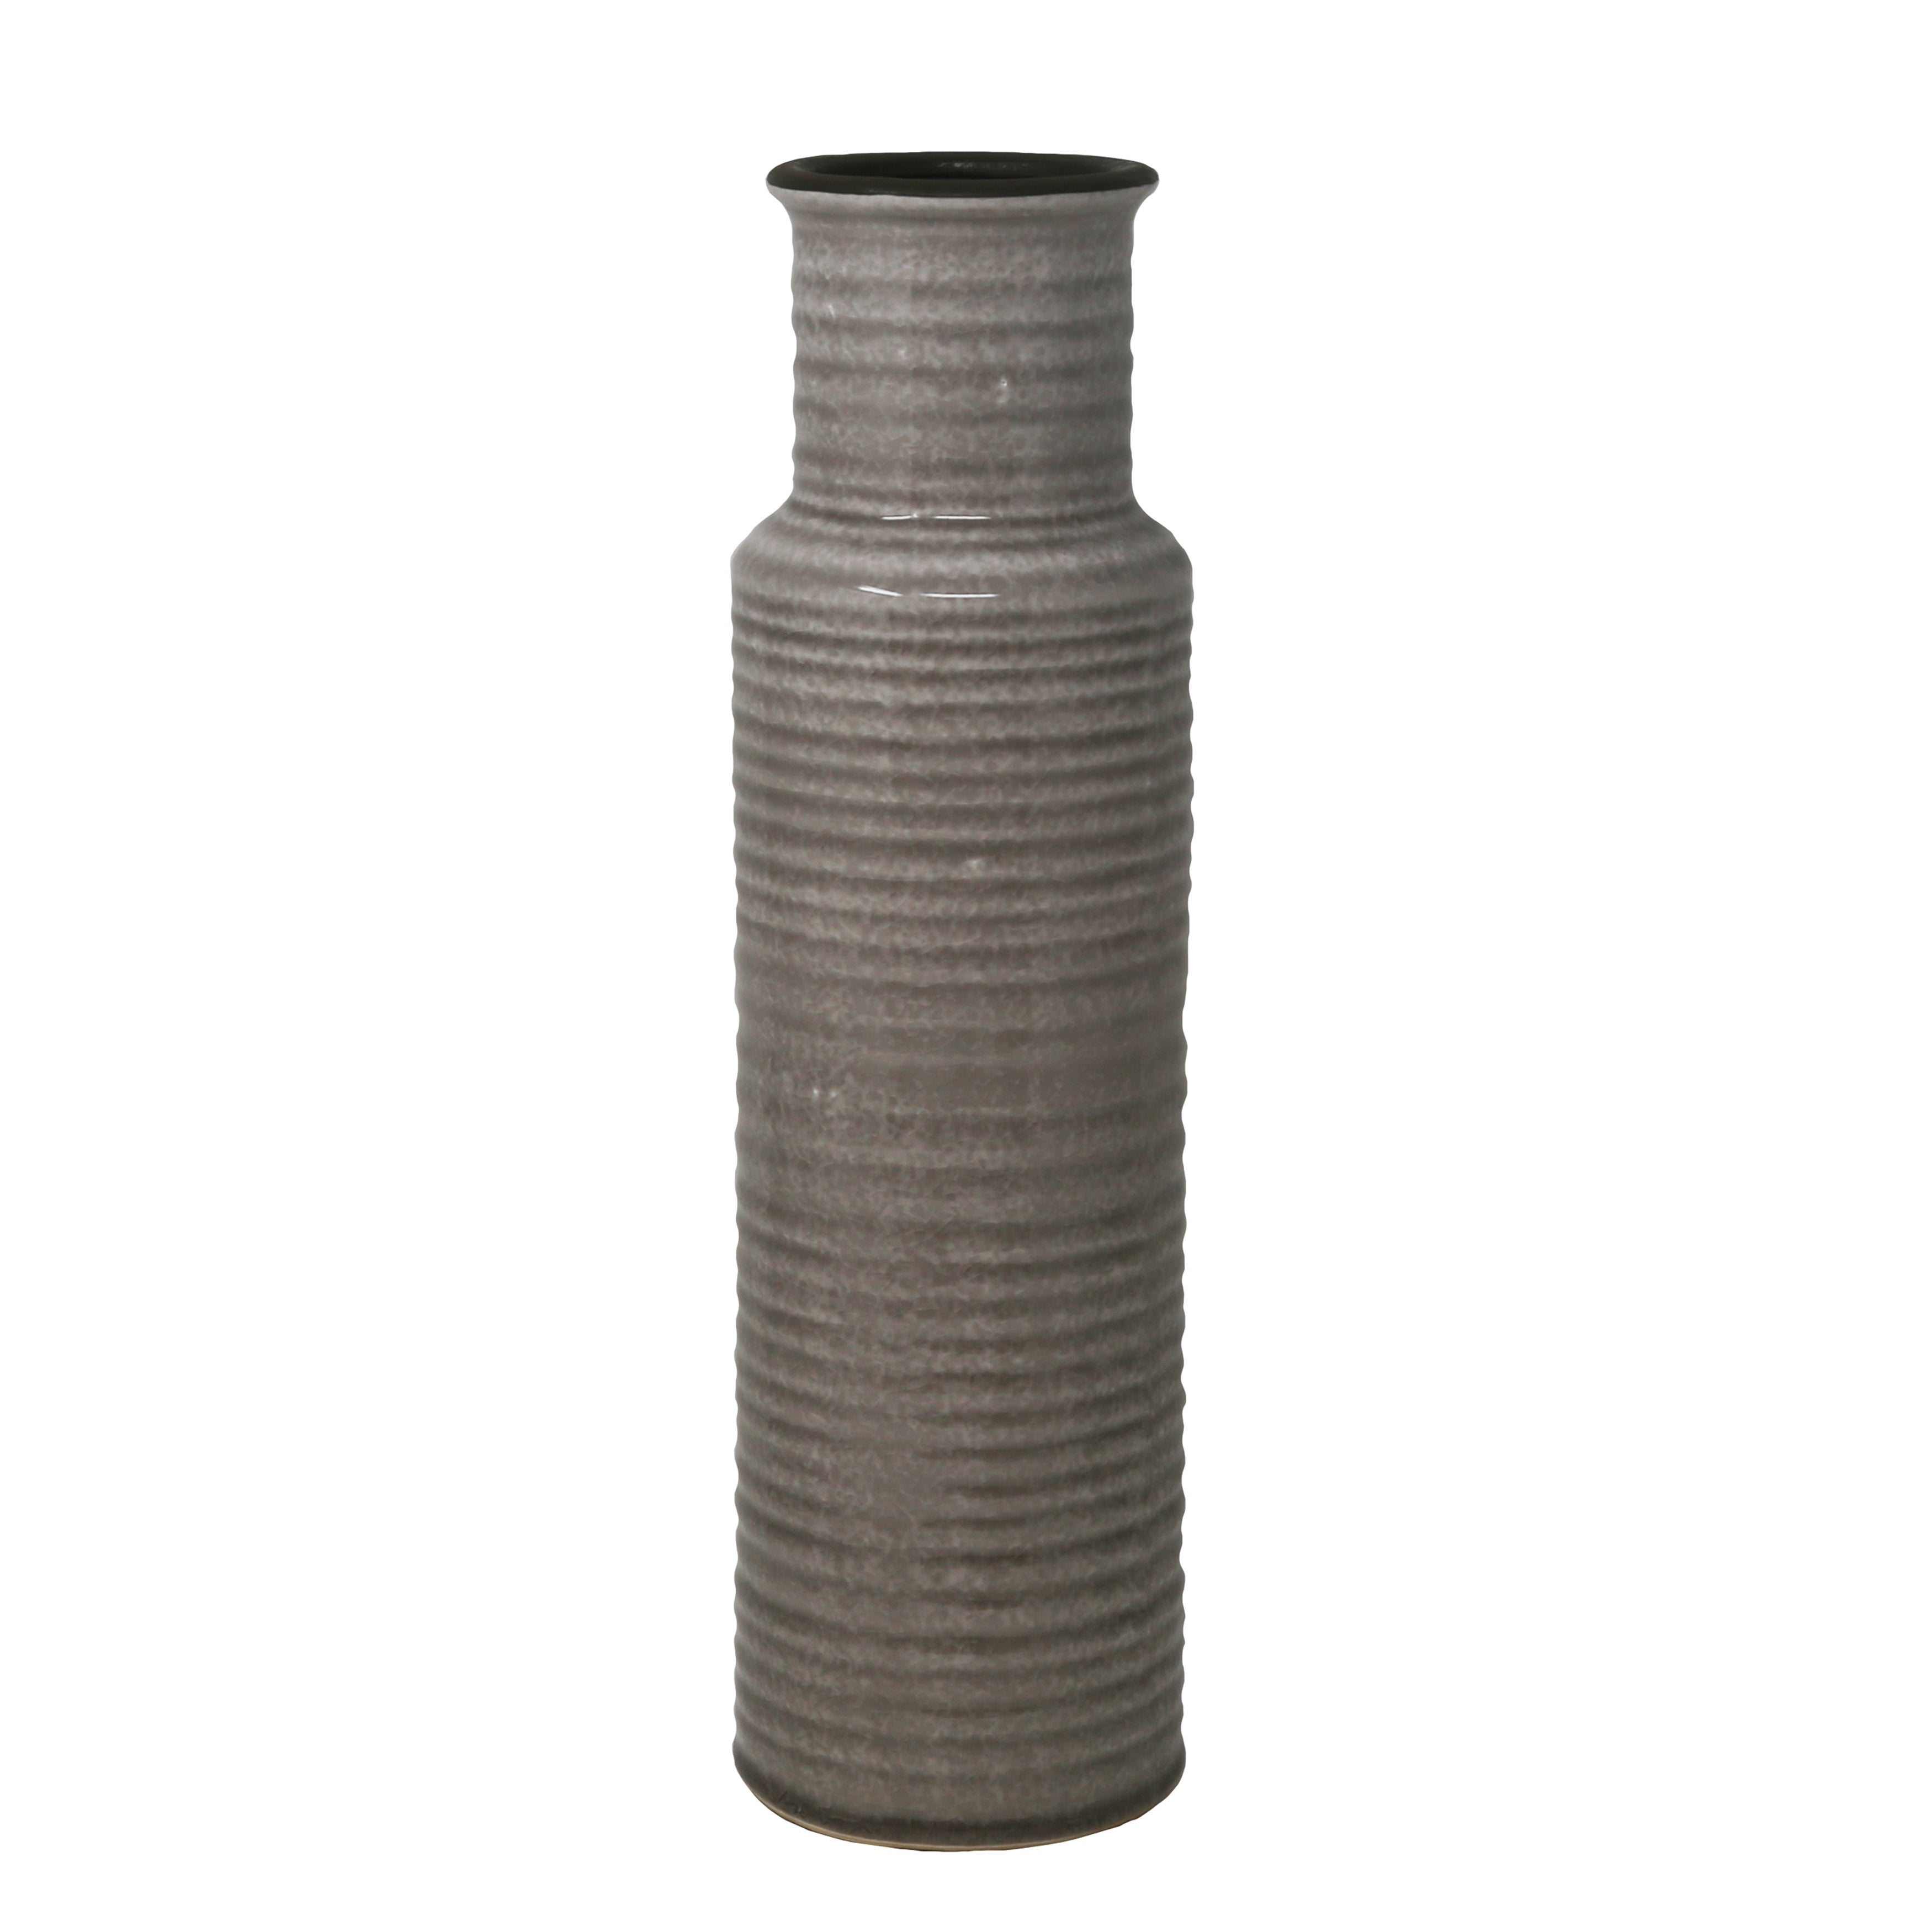 Ribbed Pattern Cylindrical Ceramic Vase with Flared Mouth Rim, Gray, Large